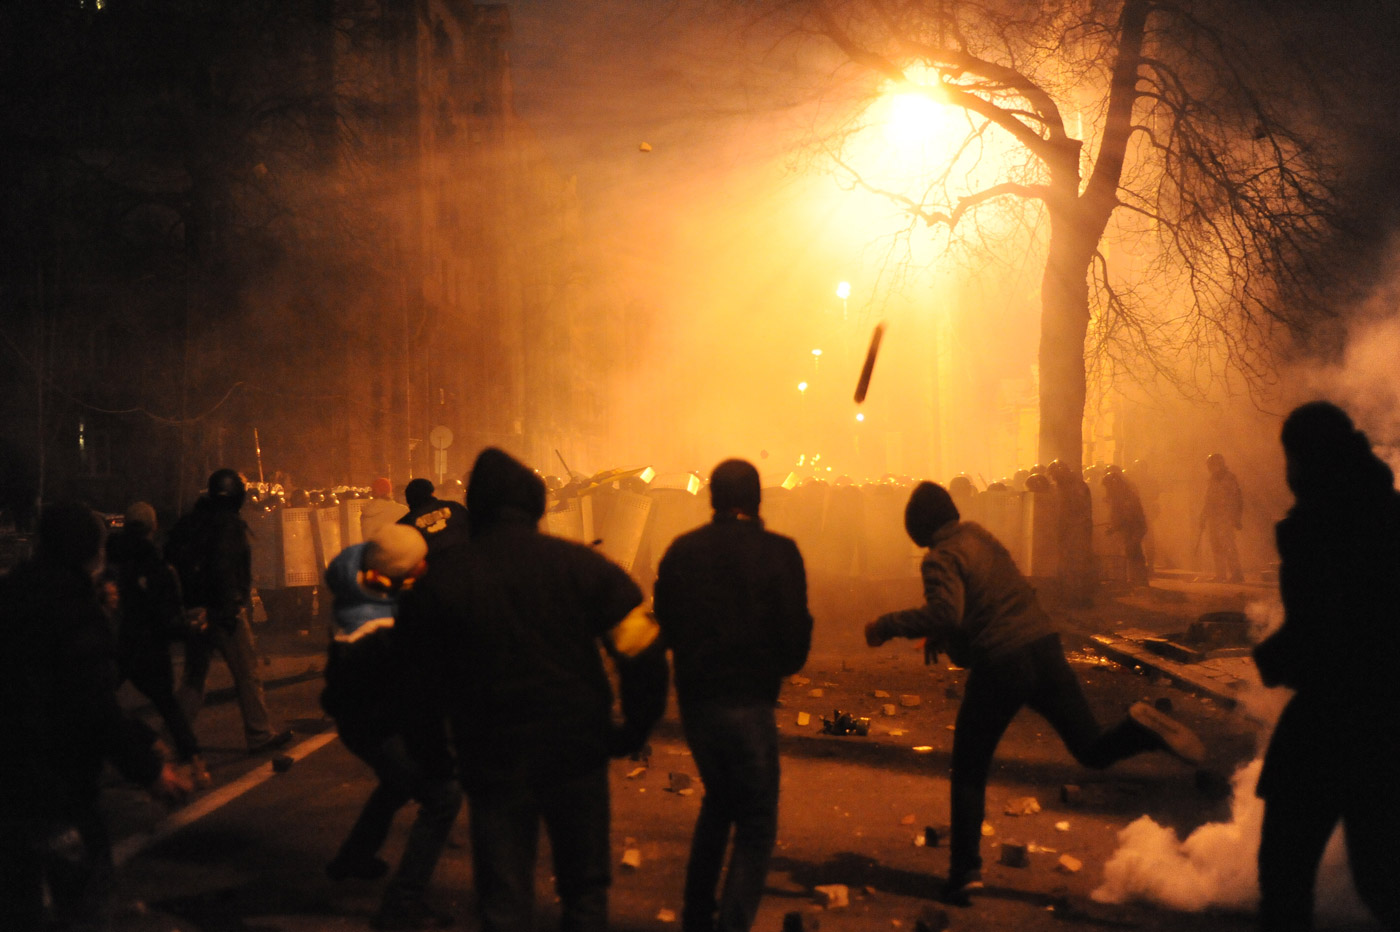 picture shows rioters throwing molotov cocktails on an already burning fire